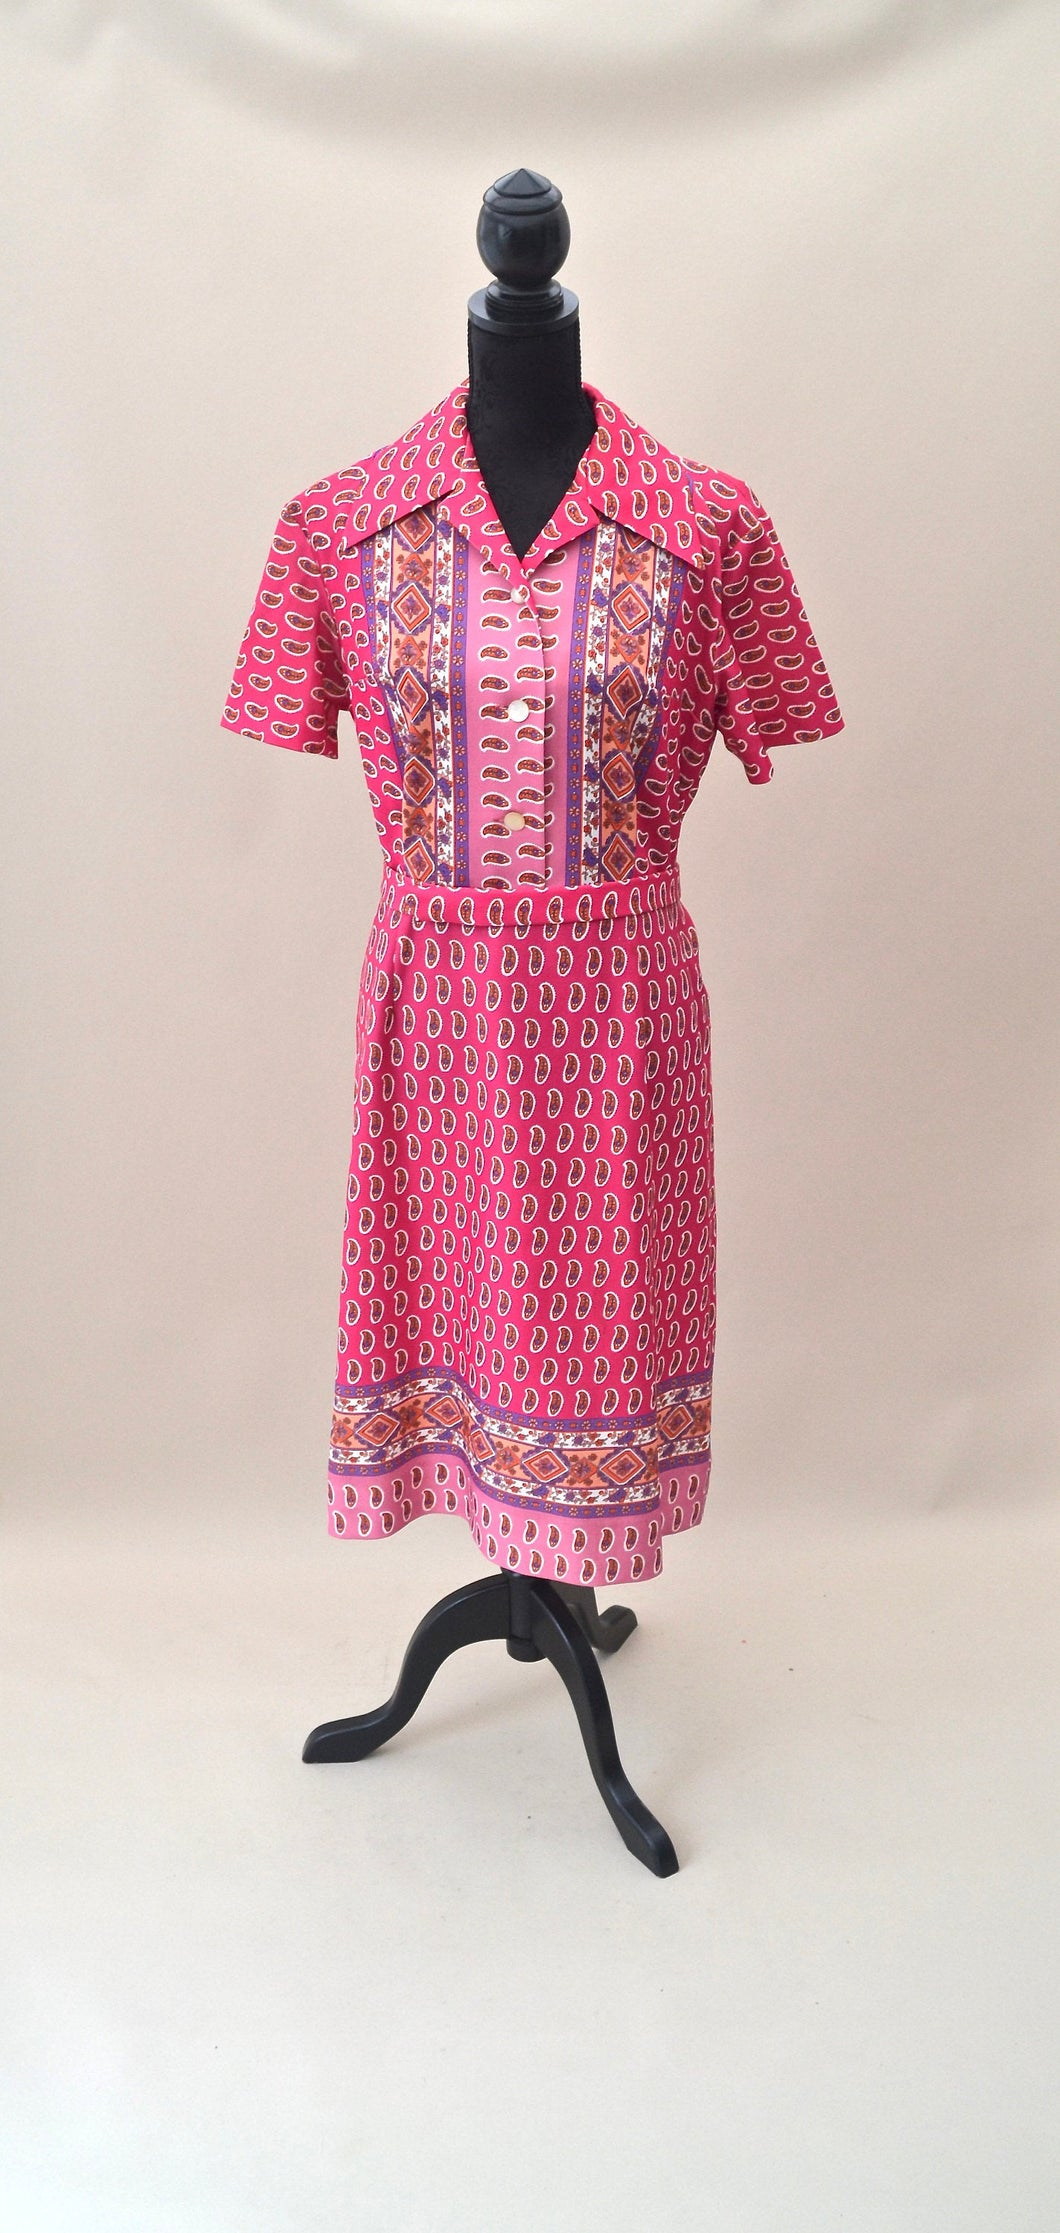 1970s Pink dress | Paisley shift dress | Oversized collar dress | Dress with belt | Est UK size 14/16